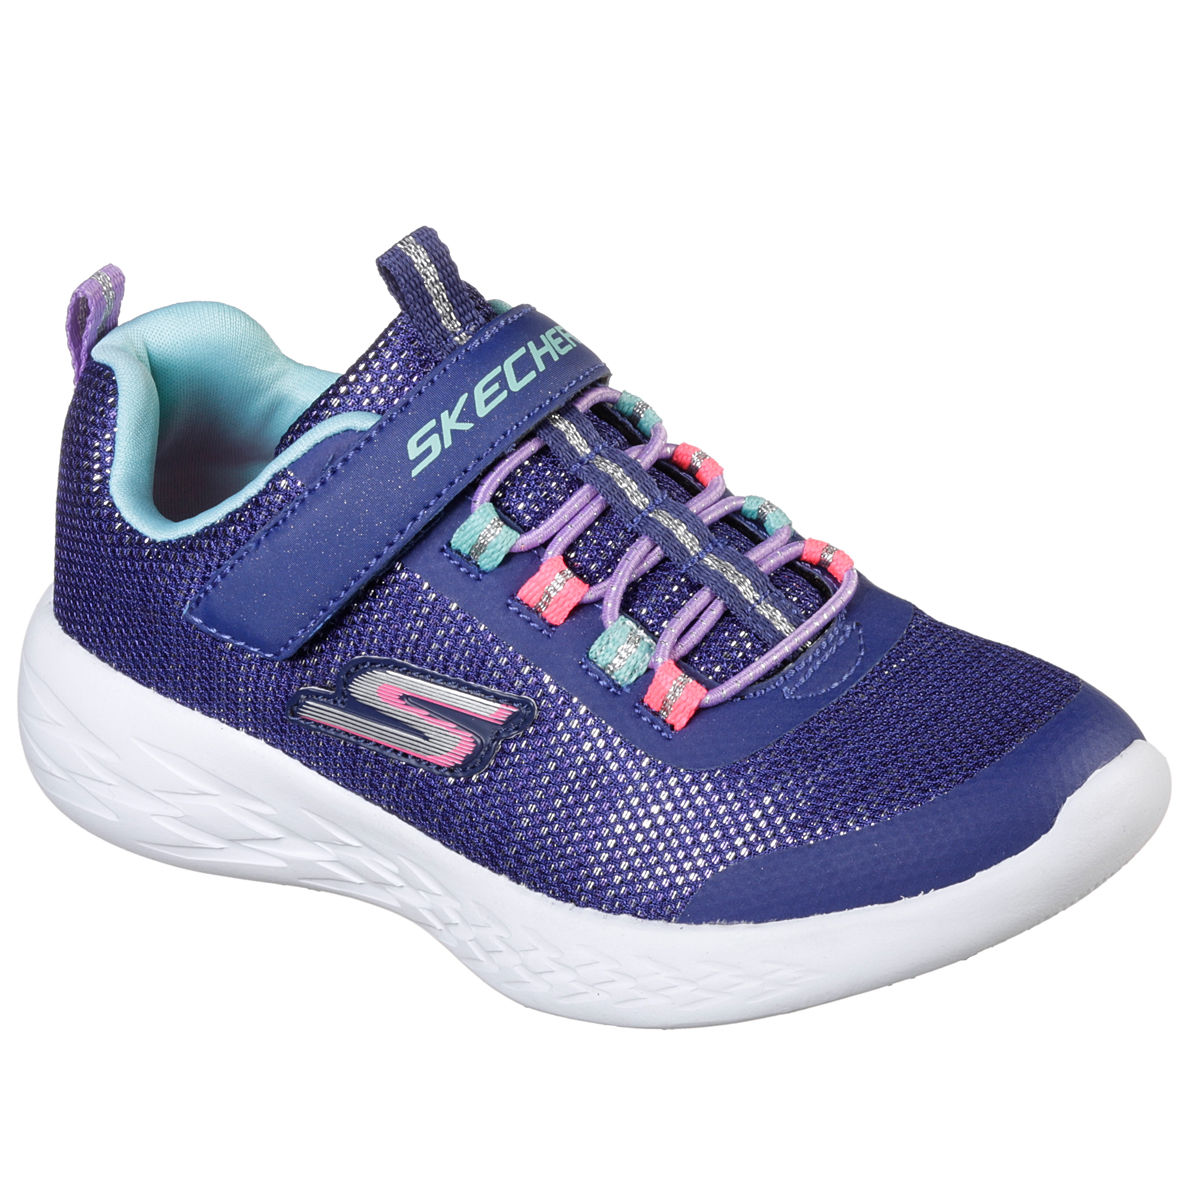 Skechers Go run 600 Sparkle Runner Pre School Girls Casual Shoe